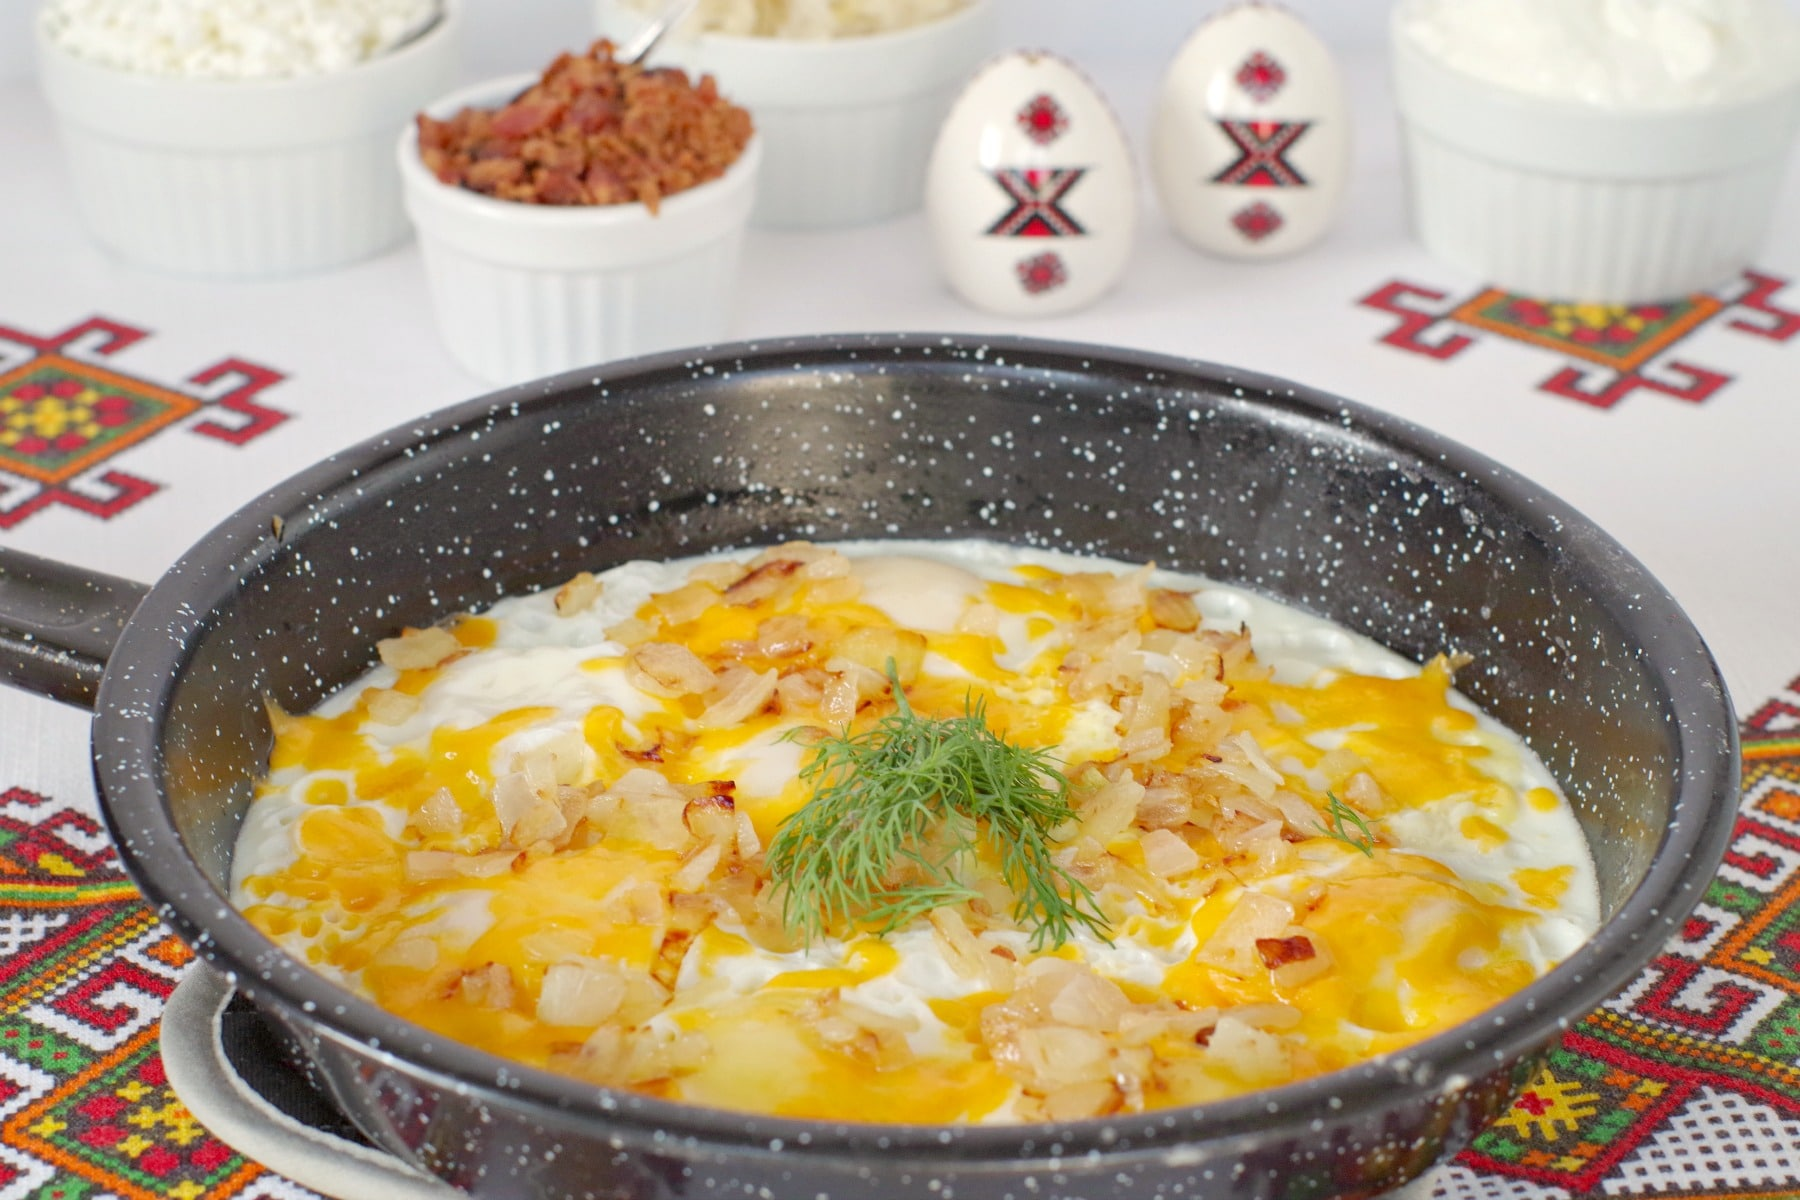 Ukrainian style eggs in foreground with toppings in background